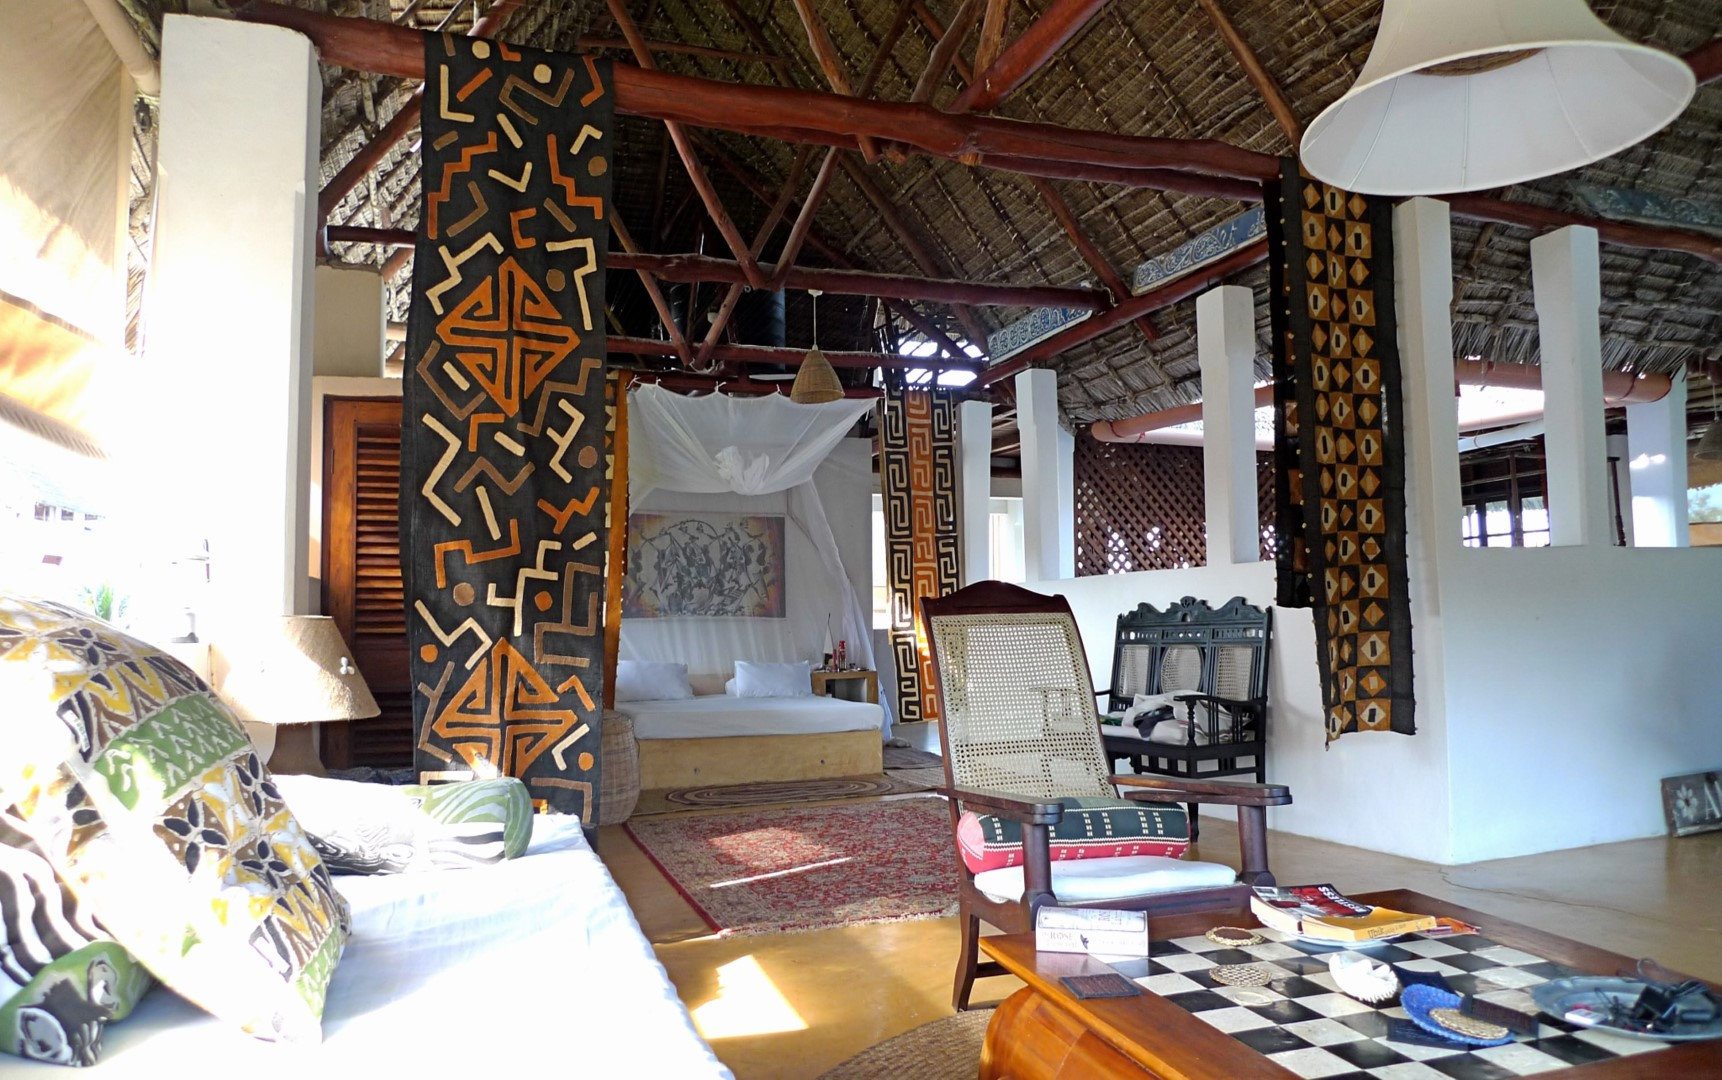 Deule-House-Shela-Lamu-Island-Kenya-Main-Bedroom.jpg